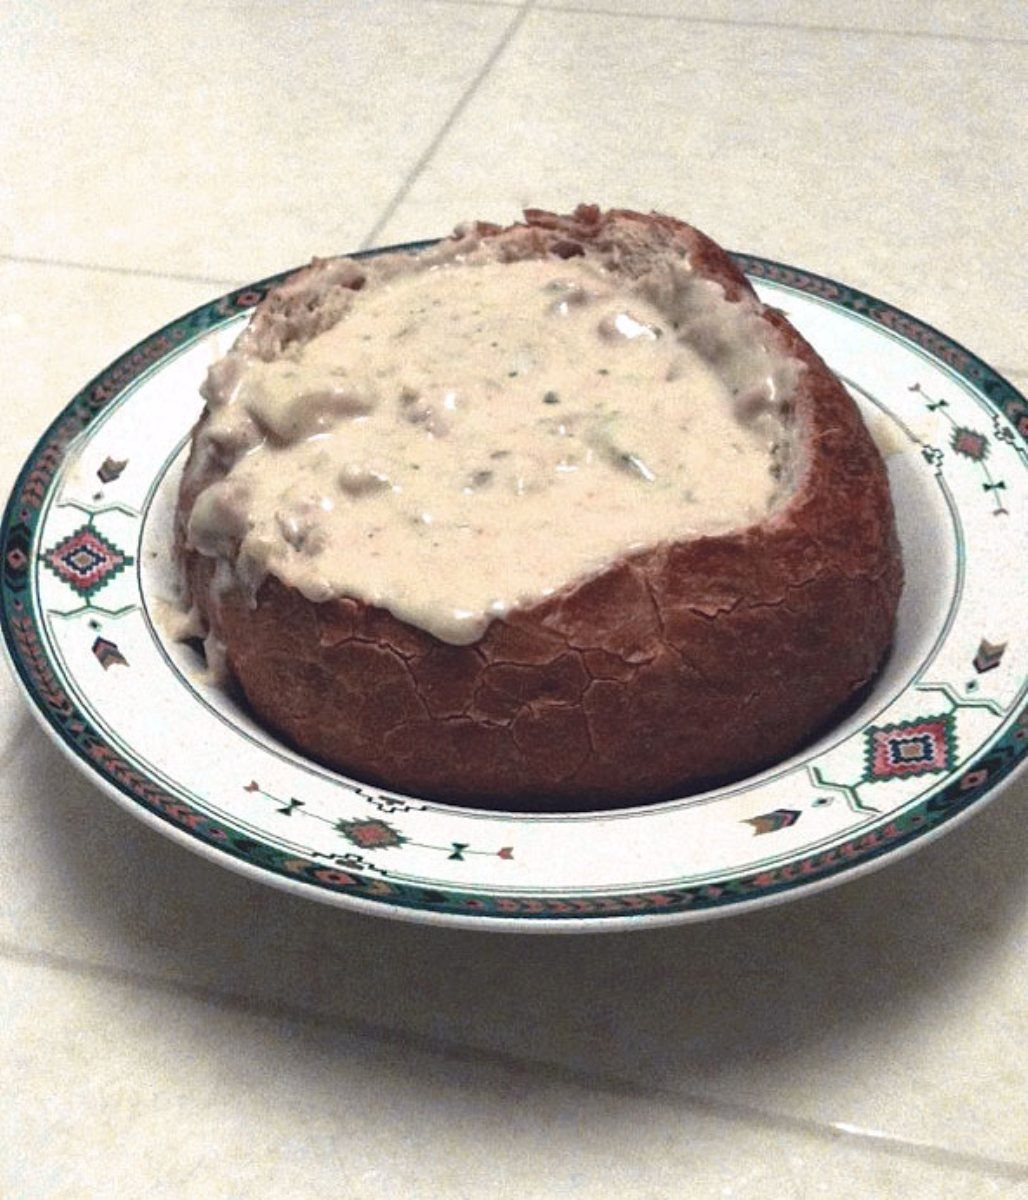 Outback Steakhouse Clam Chowder...I had this at the restaurant and can't wait to make it at home!!!